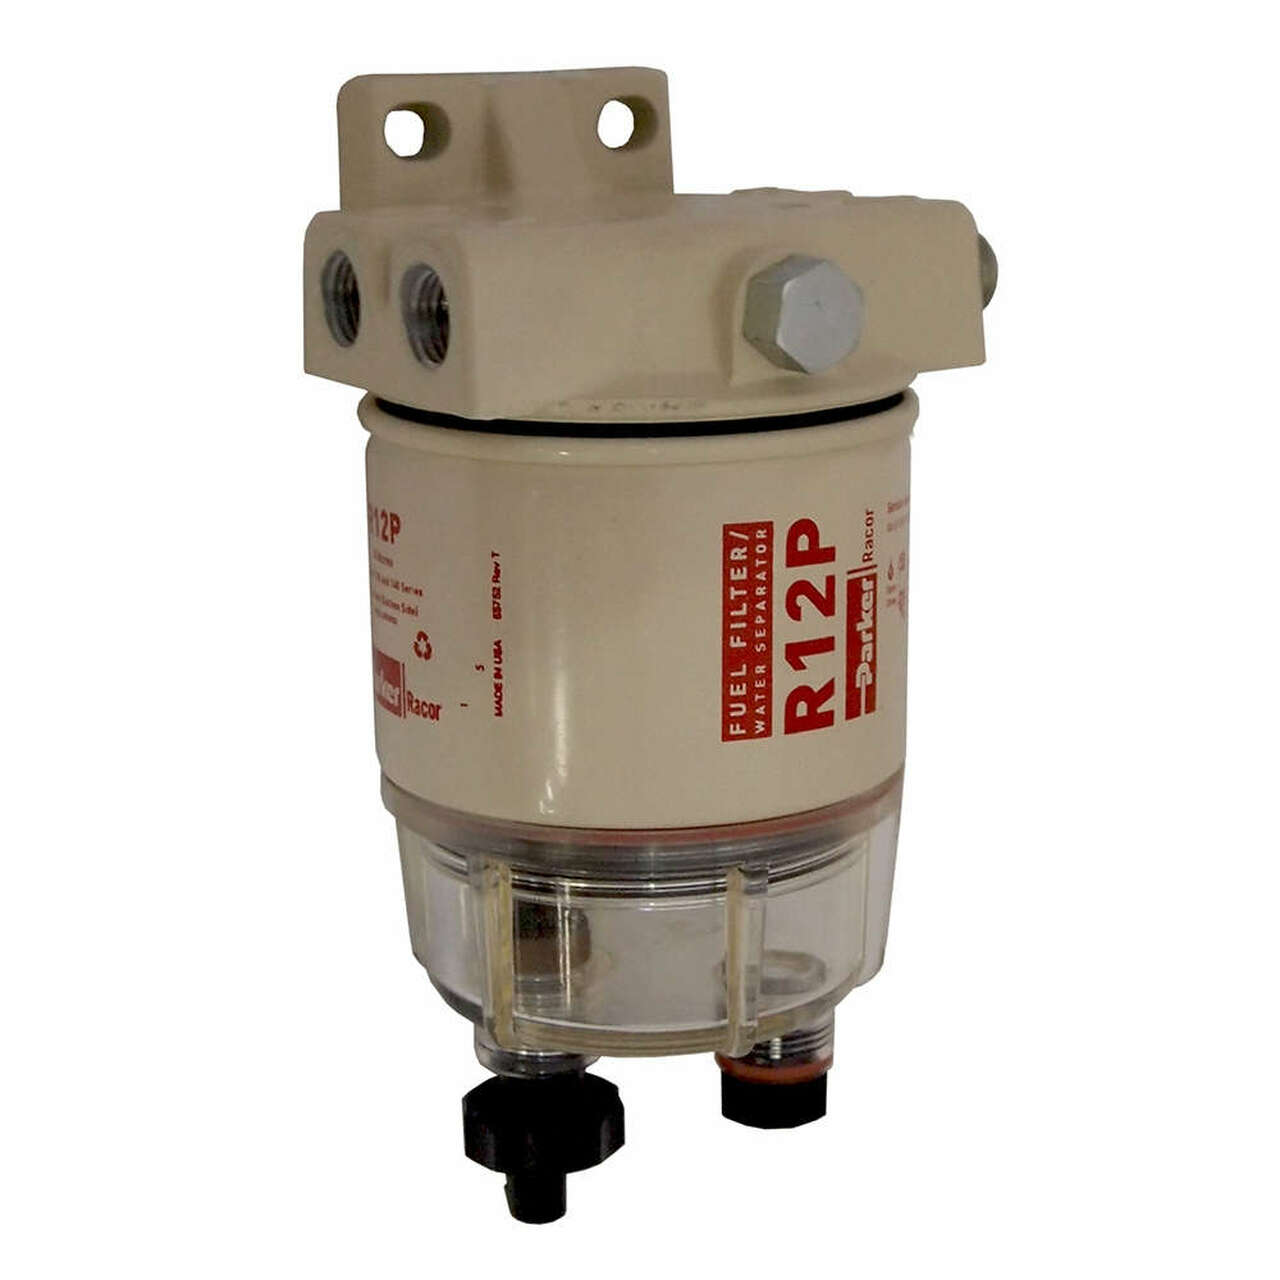 racor 120a low flow fuel filter water separator filter assembly 30racor 120a low flow fuel filter [ 1280 x 1280 Pixel ]